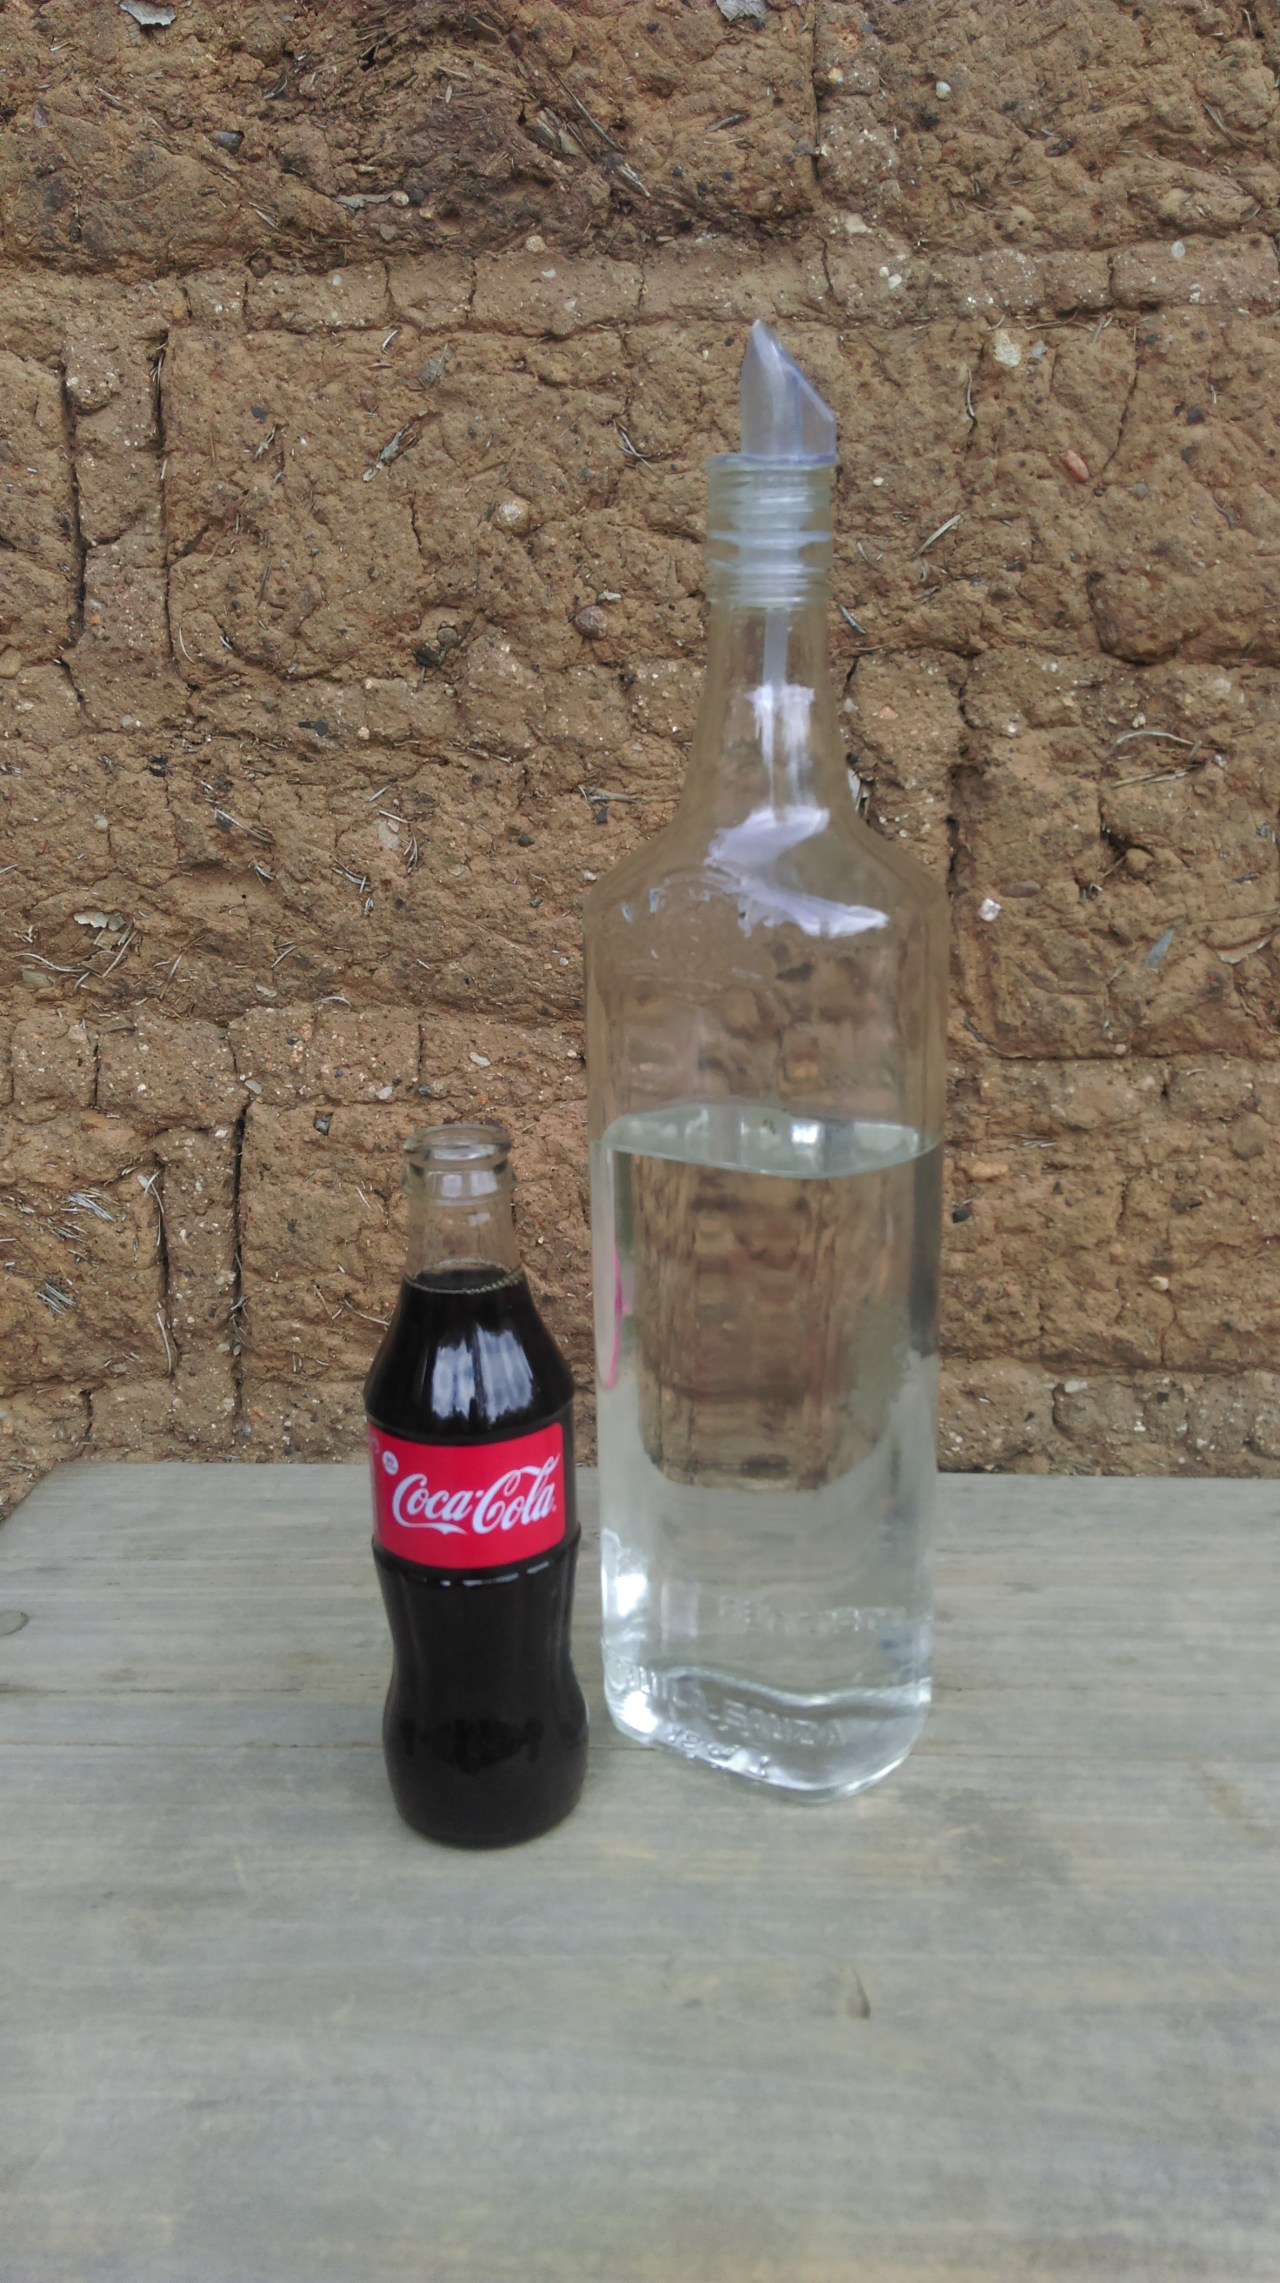 Is This A Crime Against Tequila Or A Crime Against Coca-Cola?